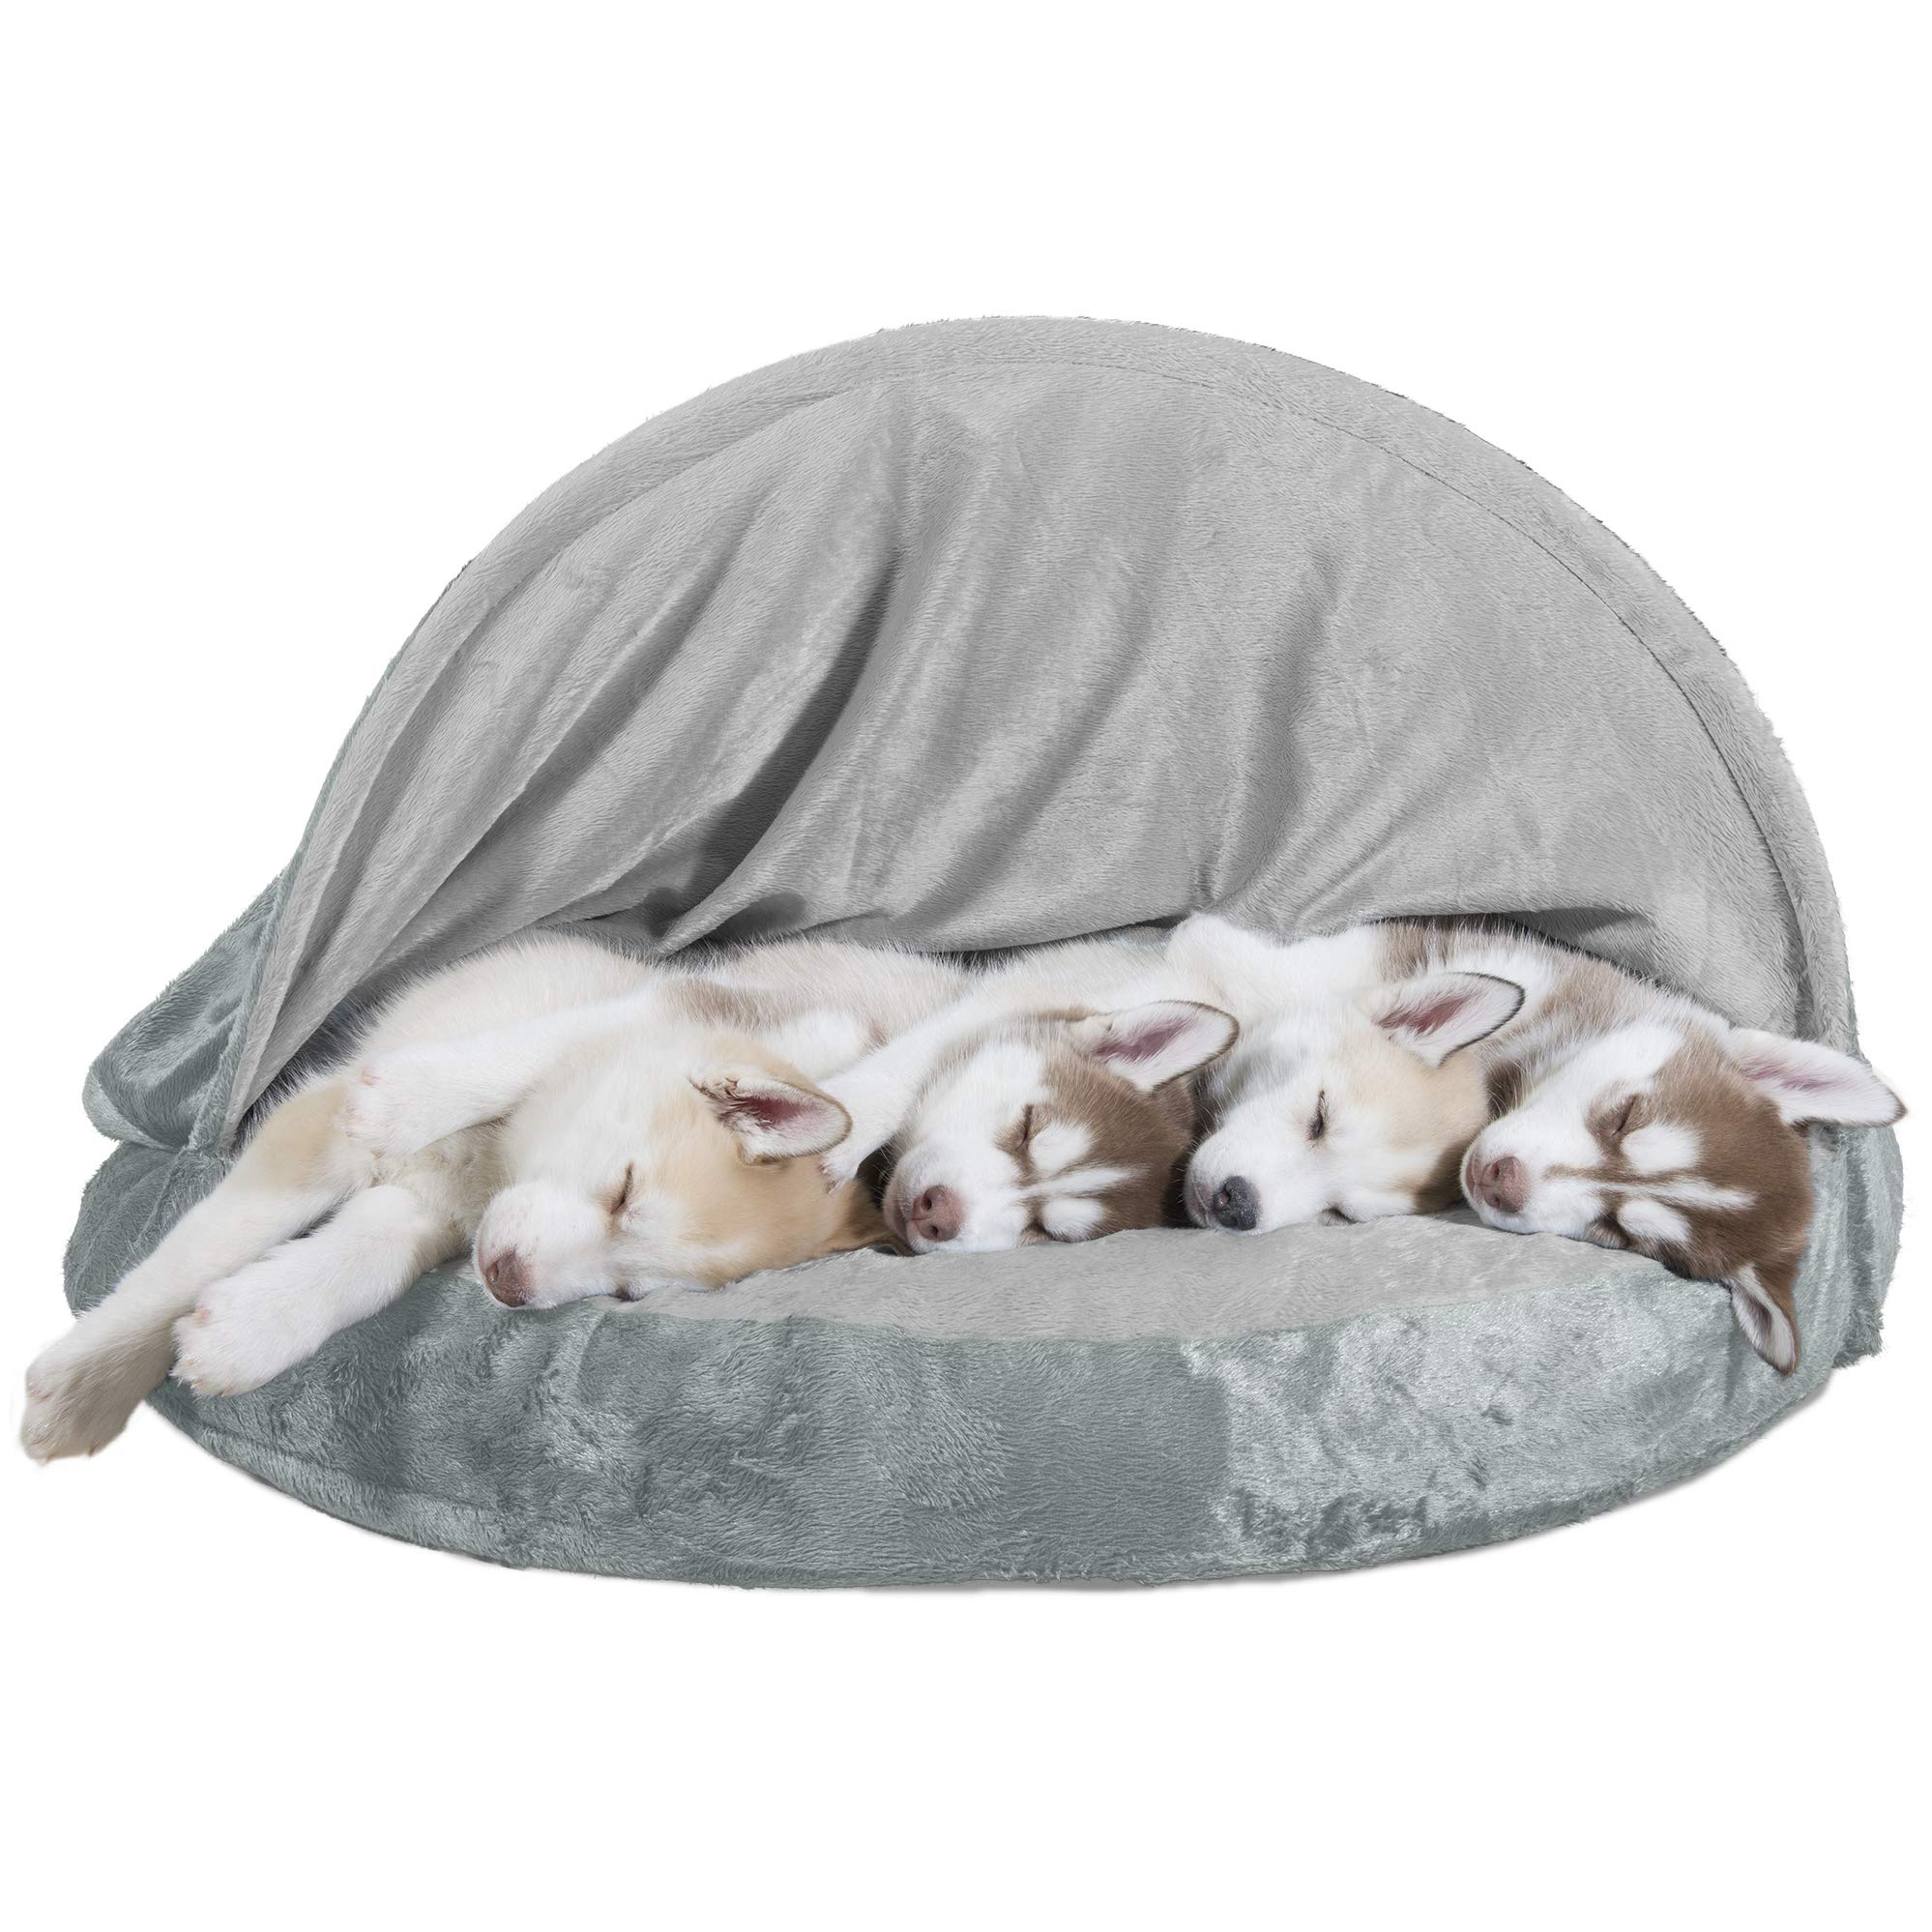 Furhaven Dog Bed | Orthopedic Round Cuddle Nest Micro Velvet Snuggery Burrow Pet Bed for Dogs & Cats, Gray, 35-Inch